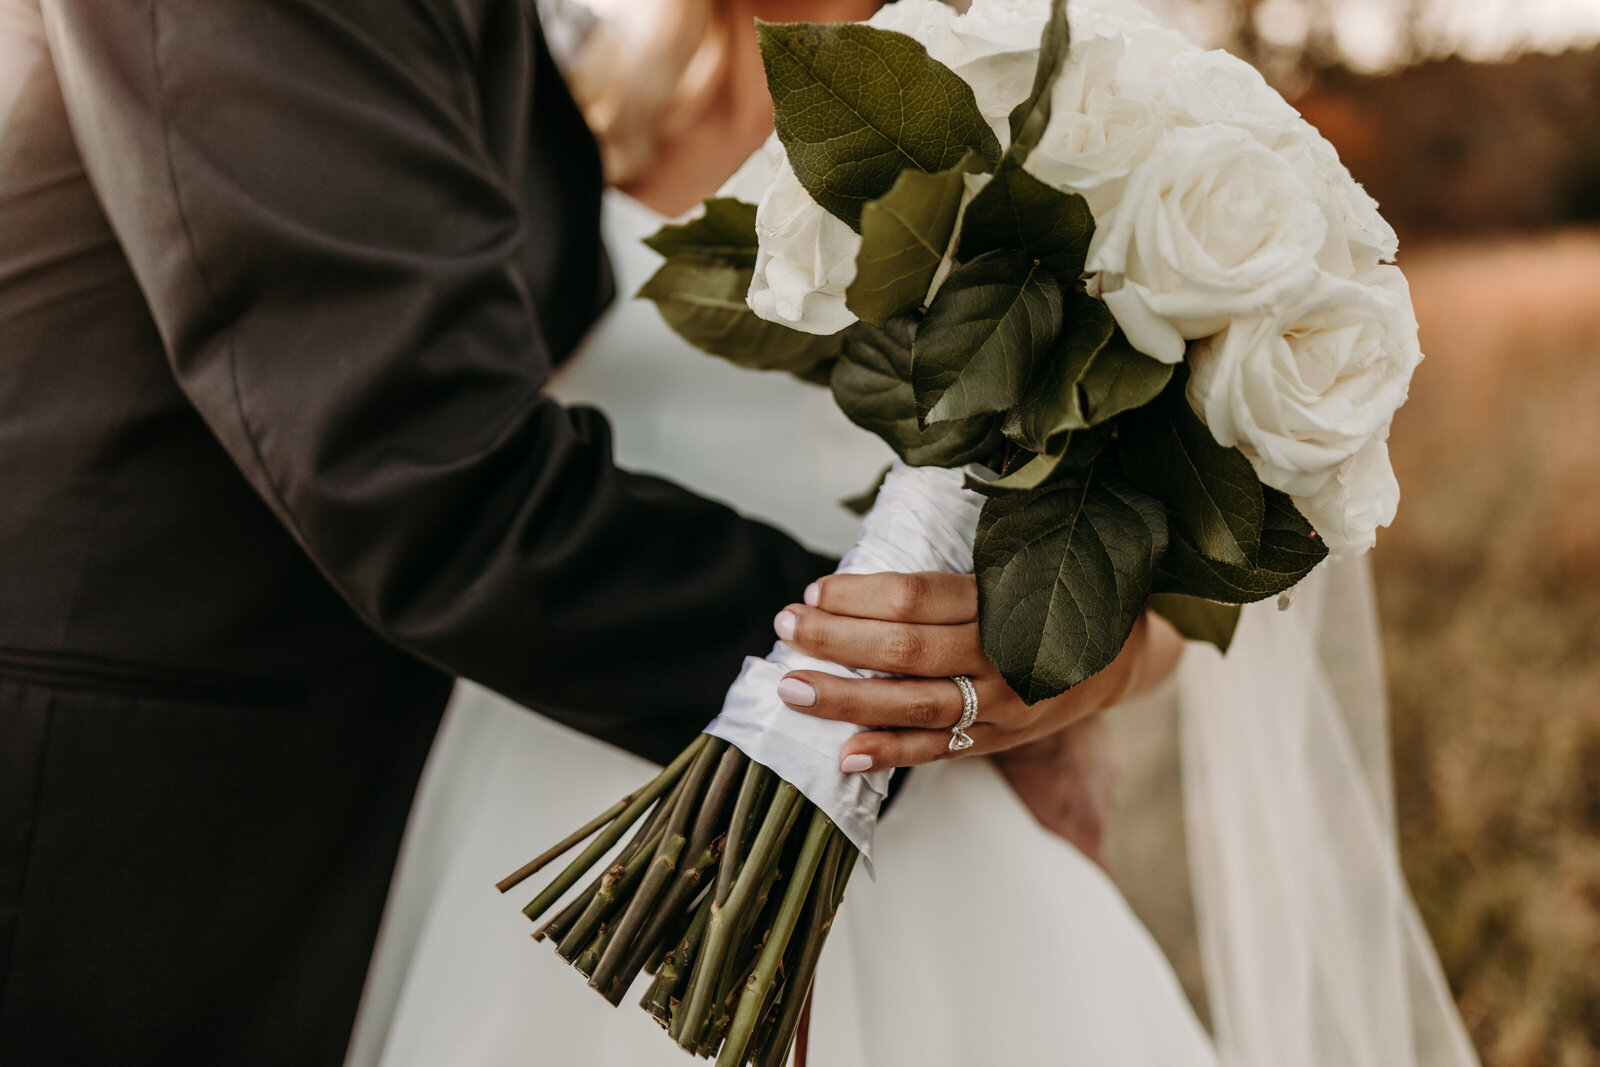 J.Michelle Photography photographs a bridal bouquet at vintage oaks farm wedding in Athens, Ga